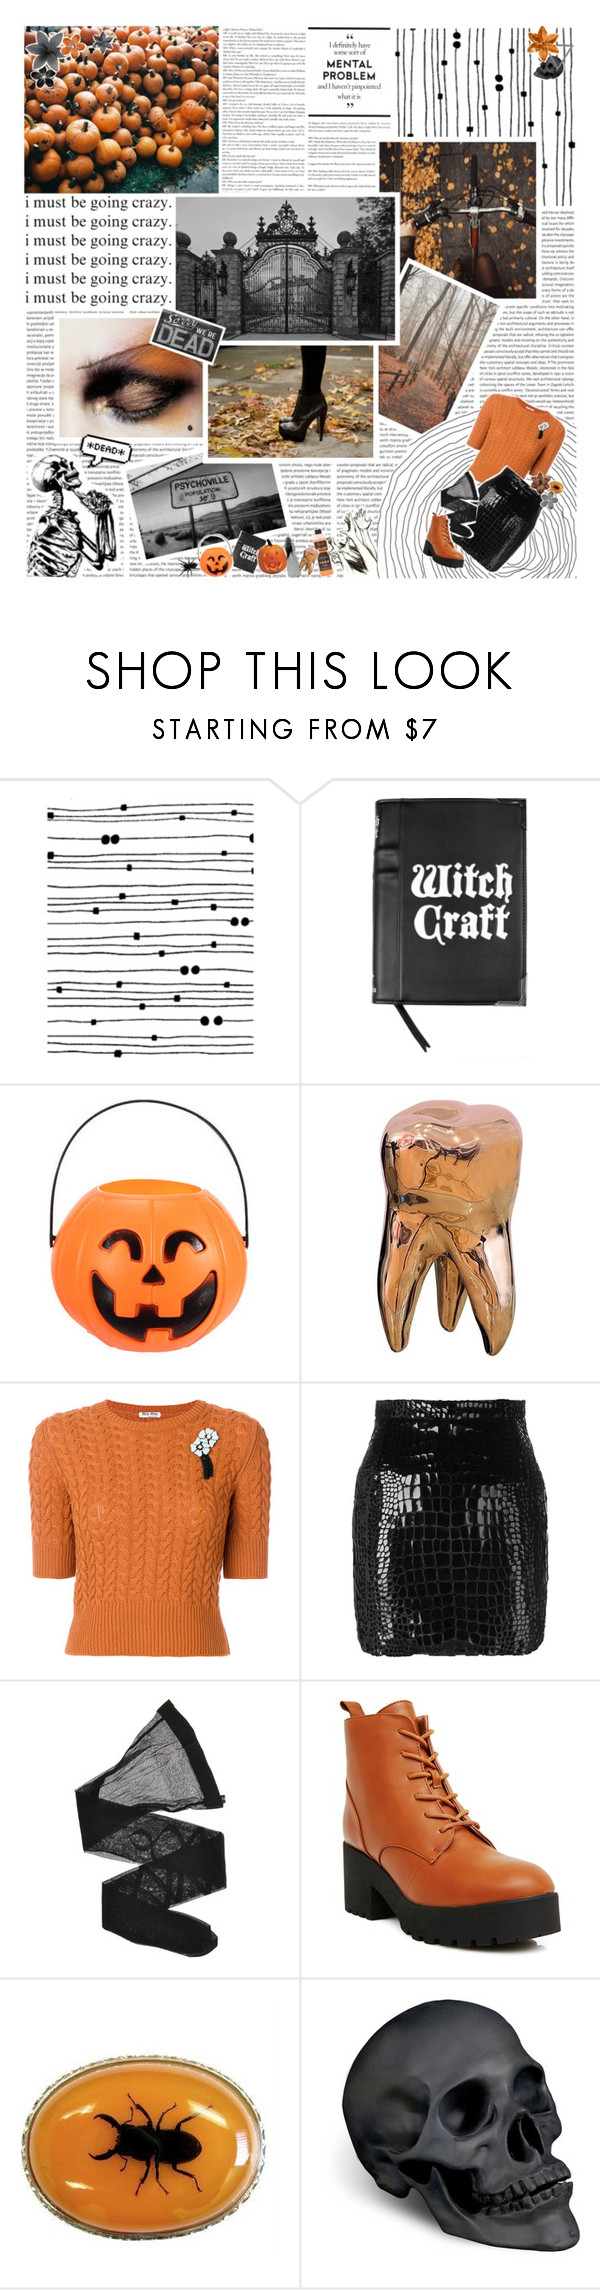 """""""!! cobwebs and jack-o-lanterns !!"""" by mormon-girl ❤ liked on Polyvore featuring GE, Miu Miu, Yves Saint Laurent, Giorgio Armani, L'Objet, SHAN, Clips, Halloween, Boots and orange"""